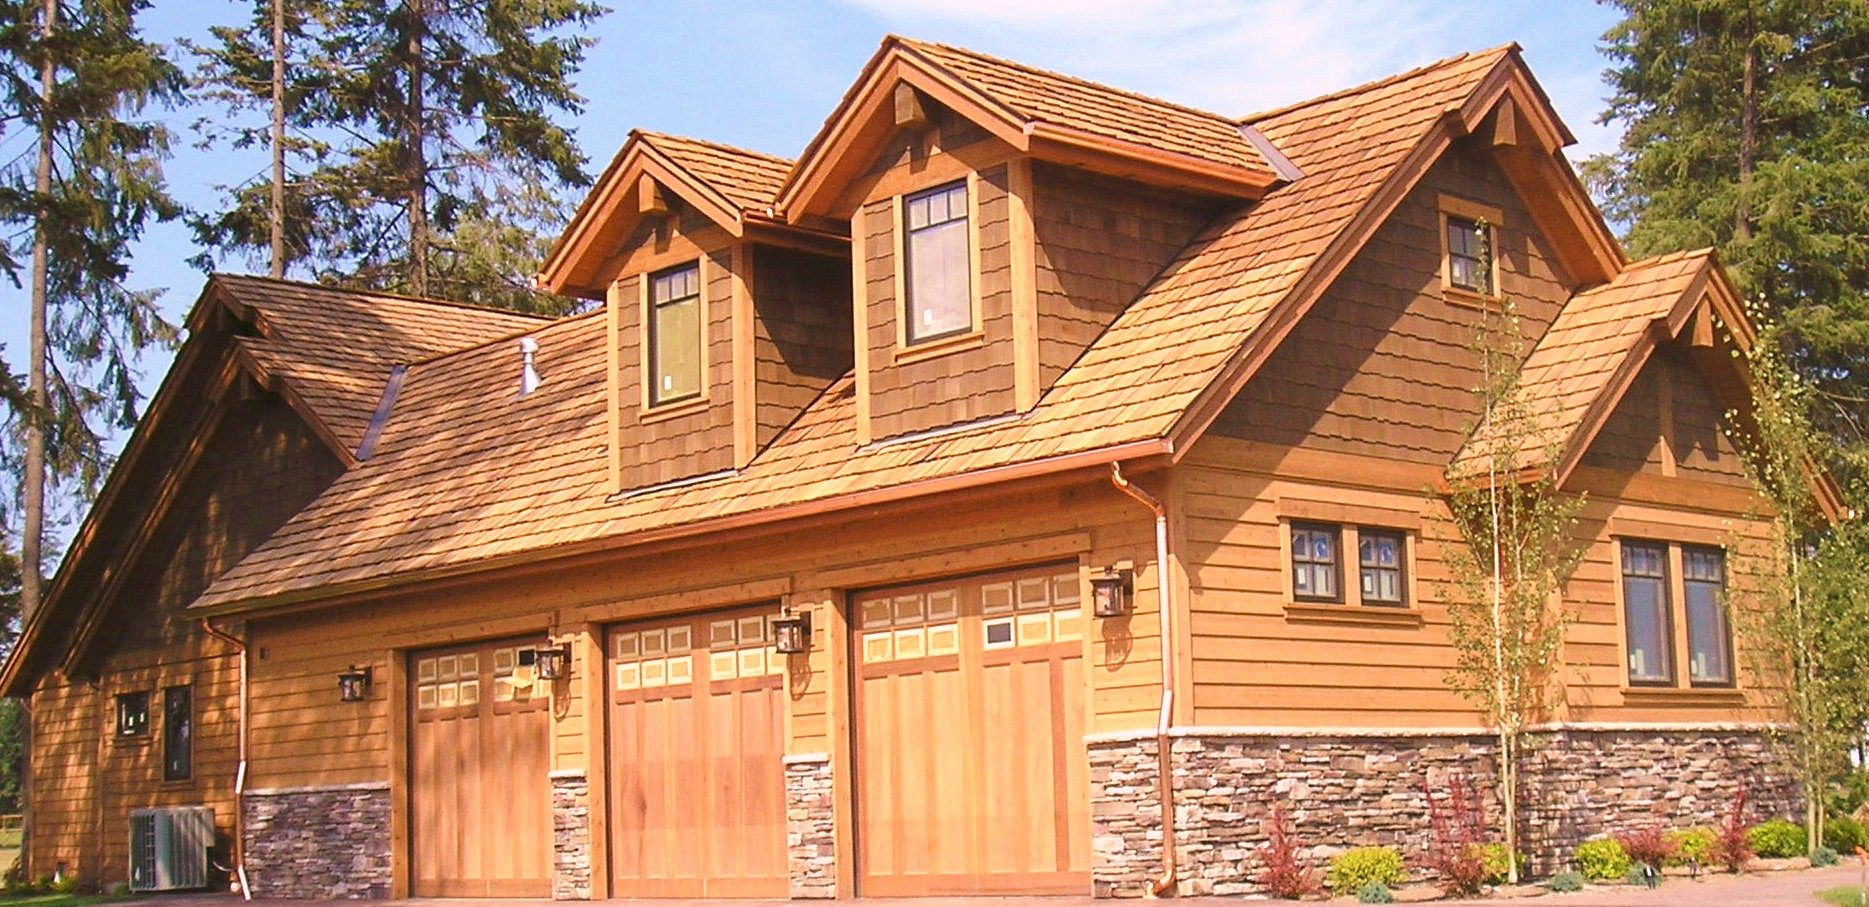 Natural Stone Siding Stunning Image Of Home Exterior